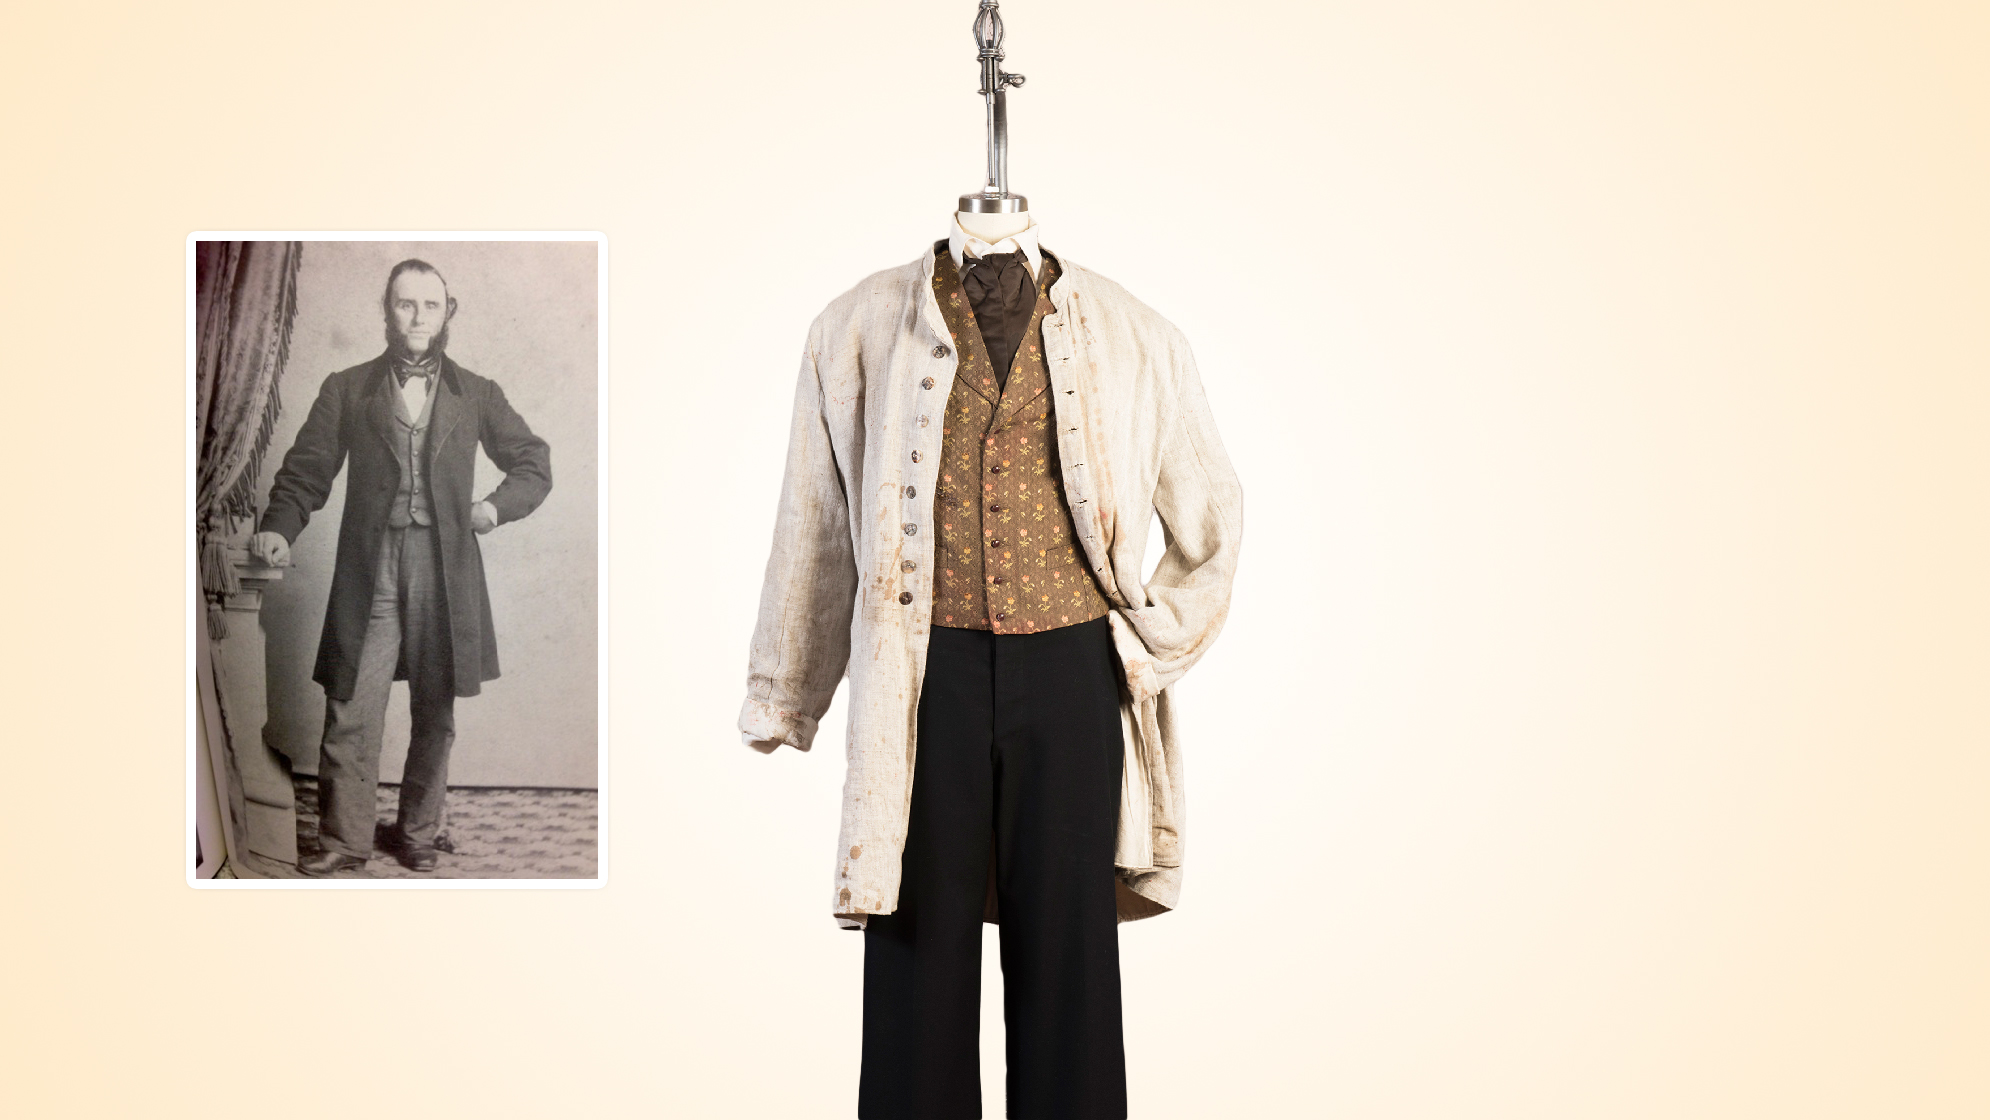 Dr. Hale's military surgeon's uniform pants, civilian waistcoat, tie and shirt, linen cover up.